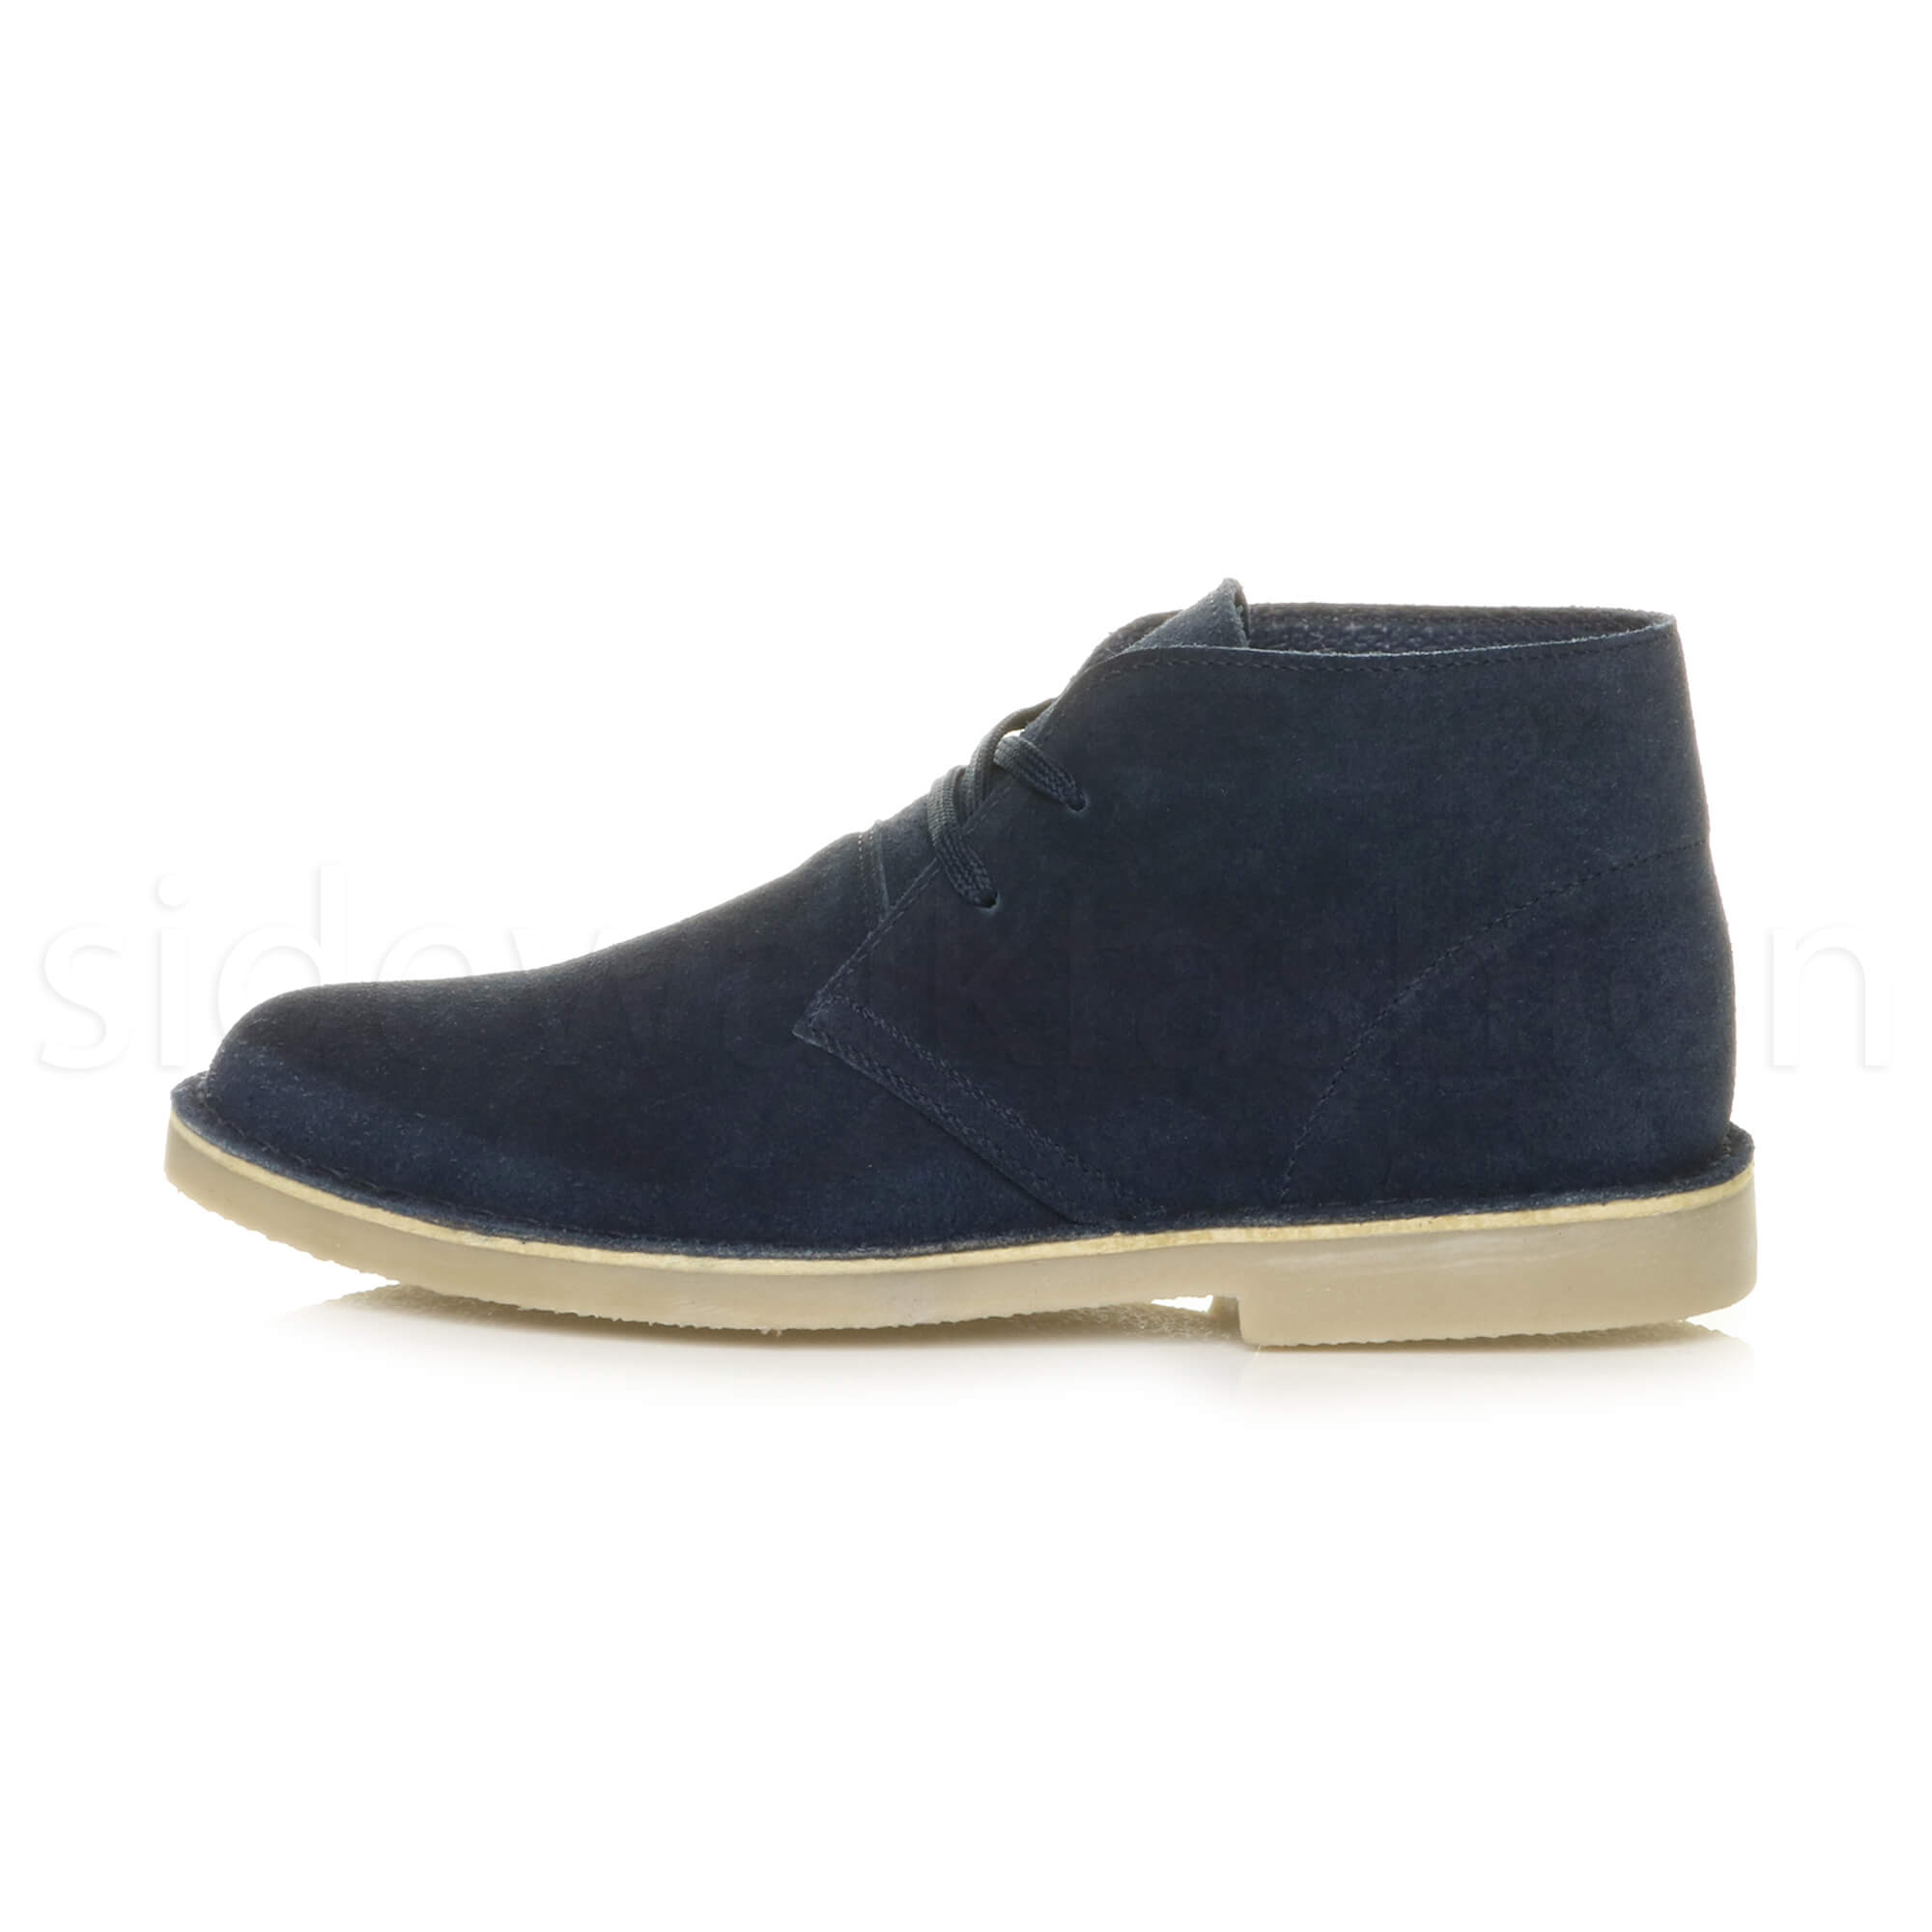 Mens-lace-up-rubber-sole-suede-ankle-chukka-desert-boots-classic-shoes-size thumbnail 17